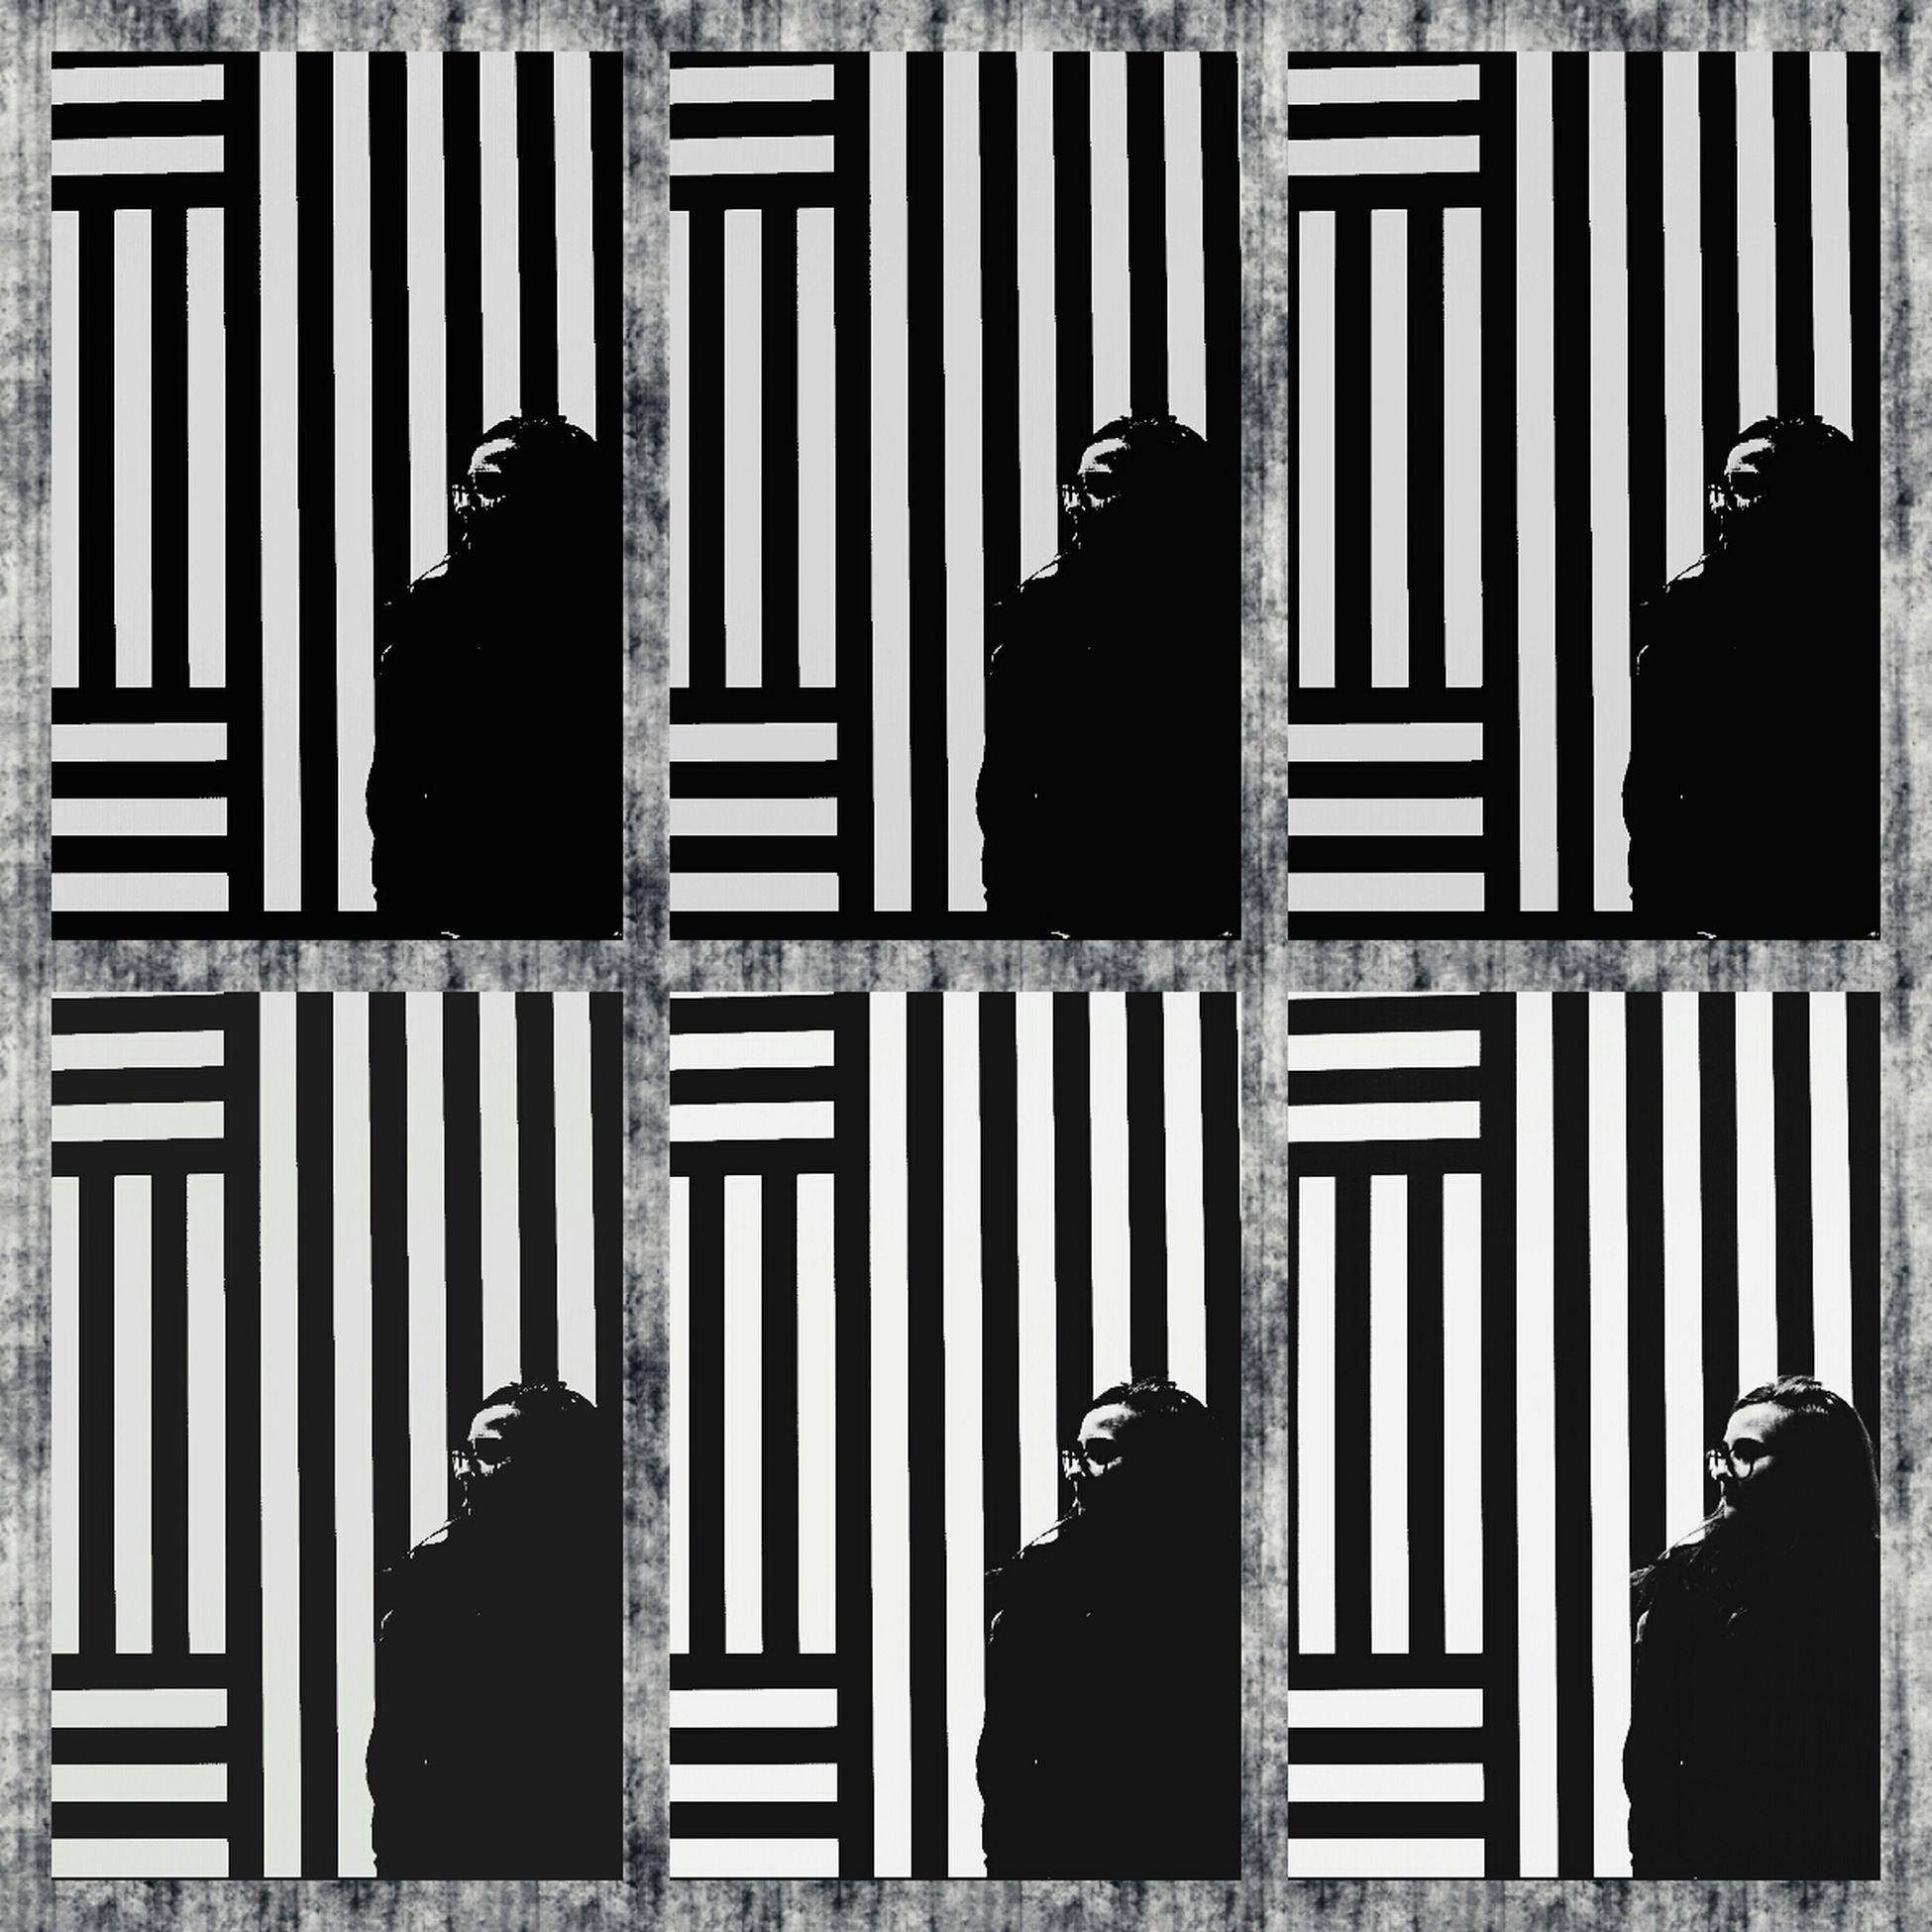 Mission Mystery That's Me Lotsofme Stripes Illusion MET Museum // New York